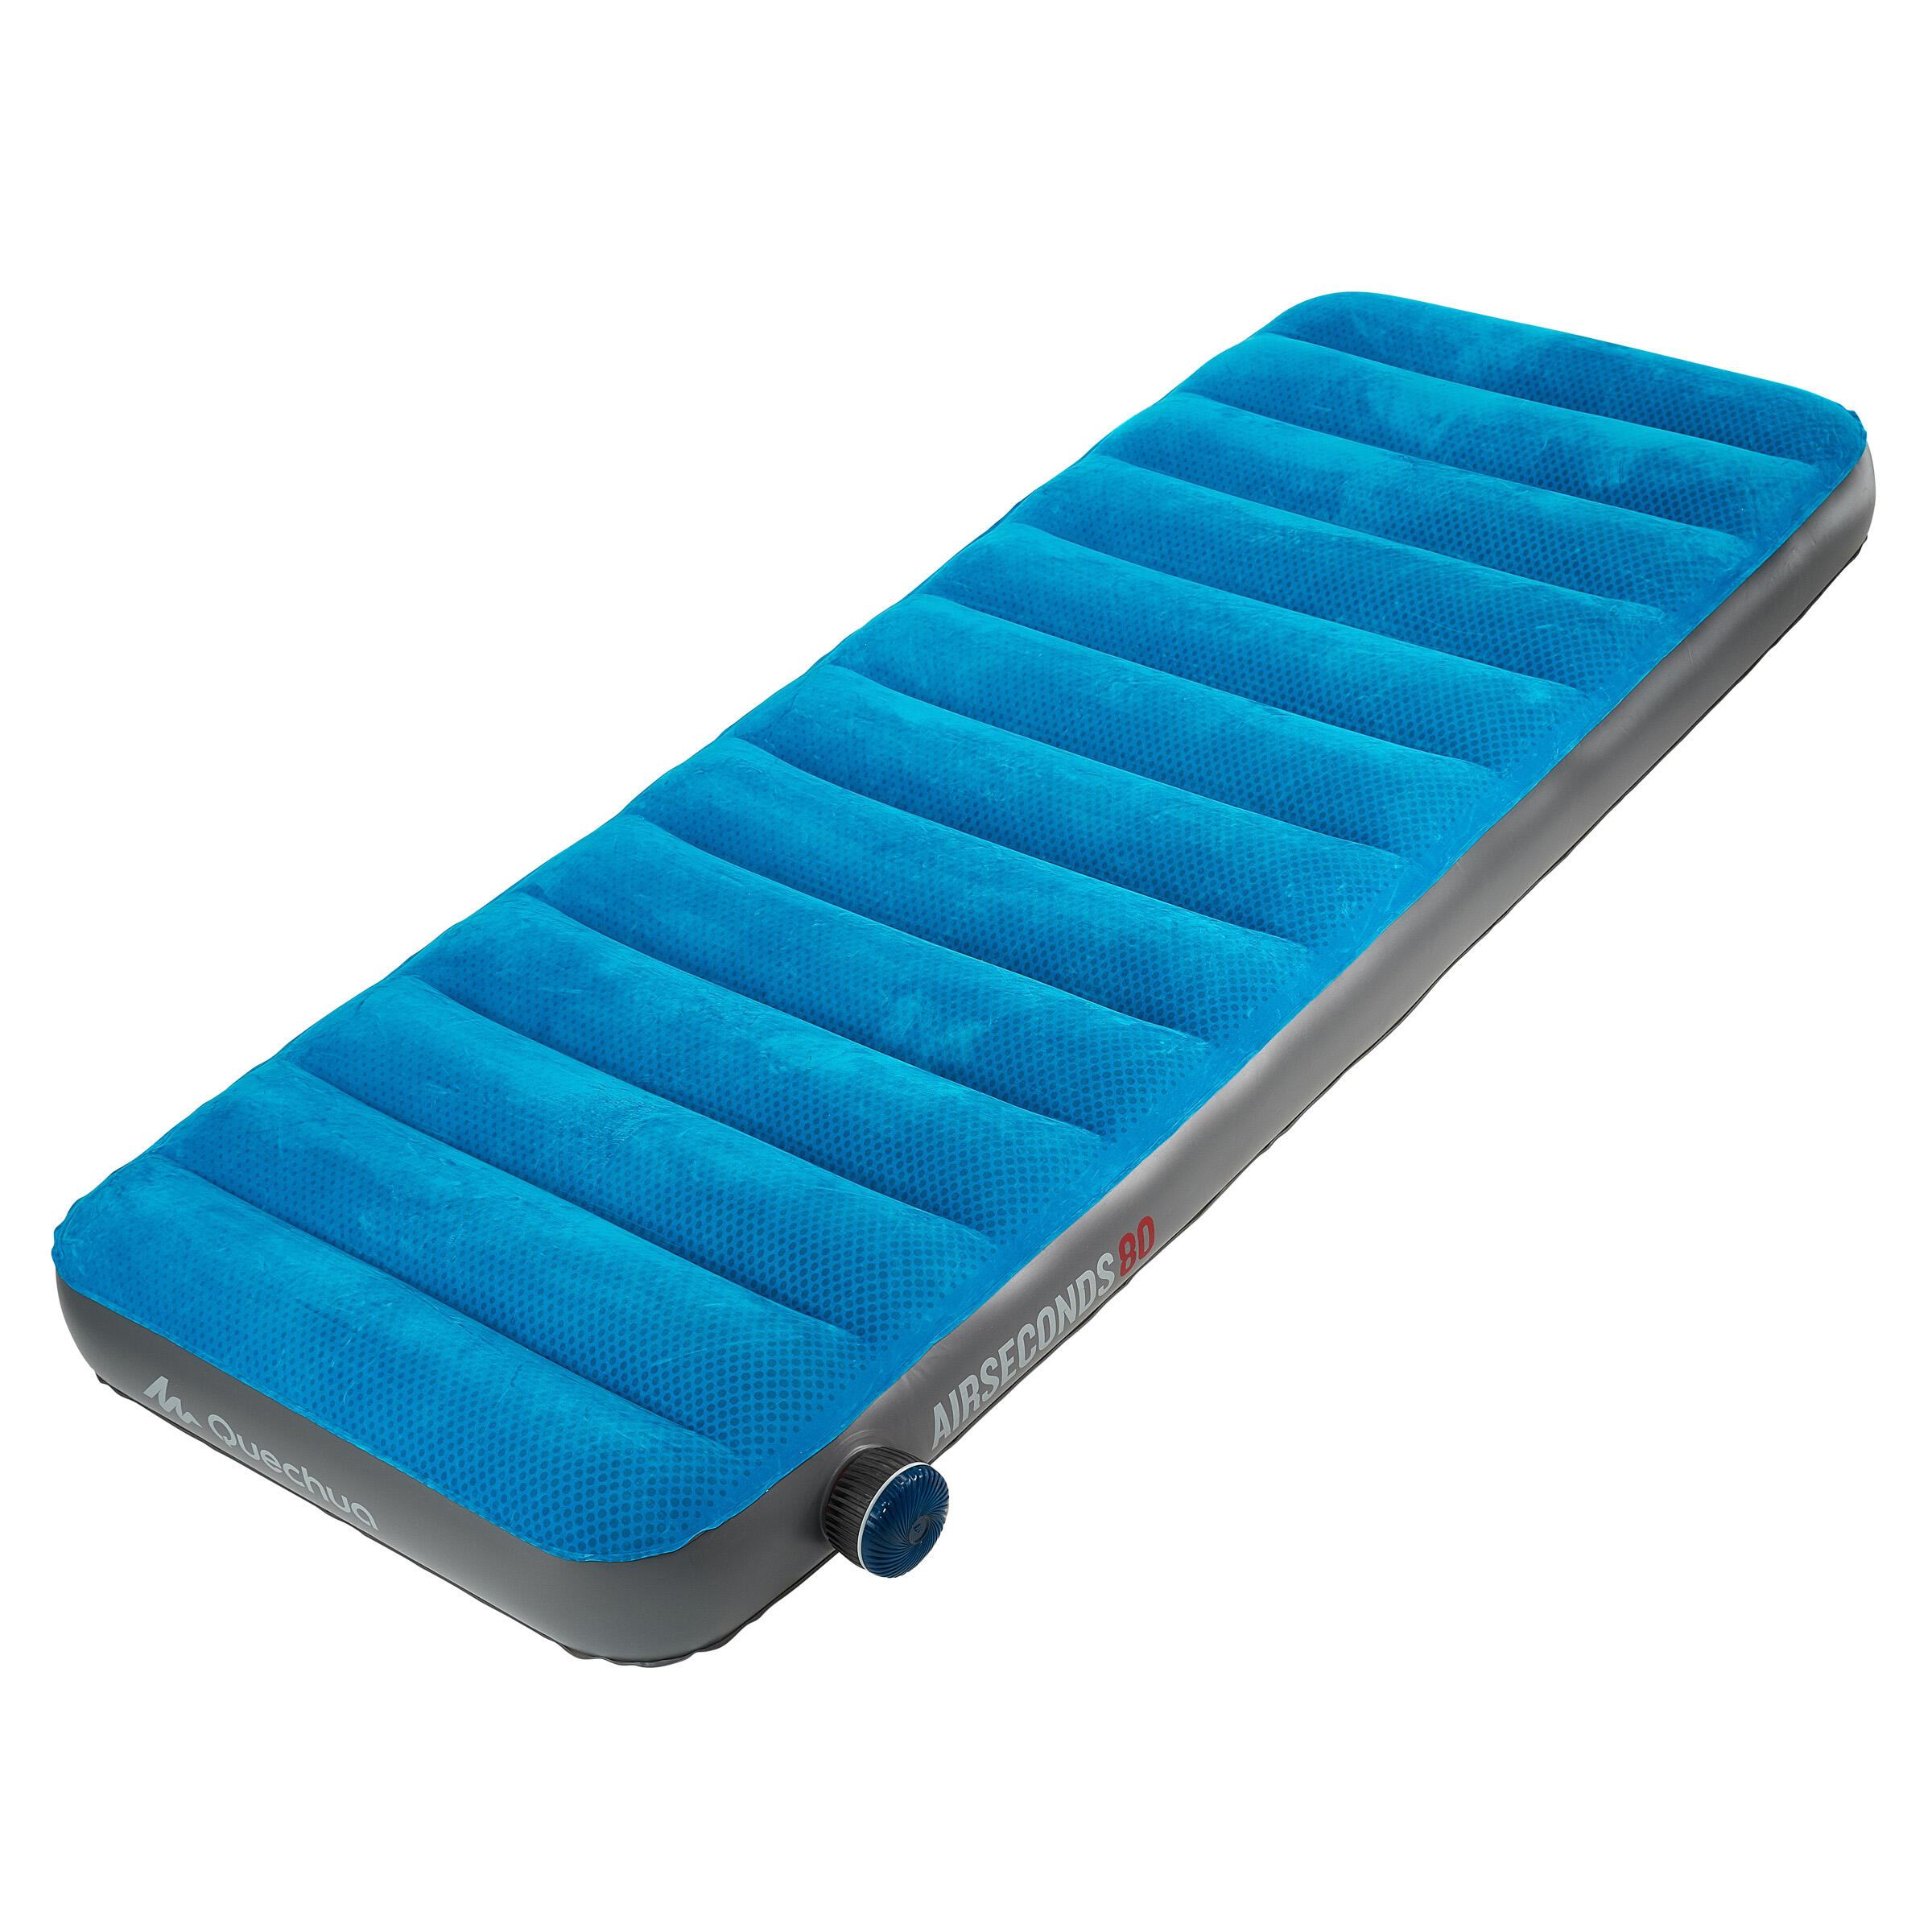 quechua matelas gonflable de camping air seconds 80 1 pers decathlon. Black Bedroom Furniture Sets. Home Design Ideas